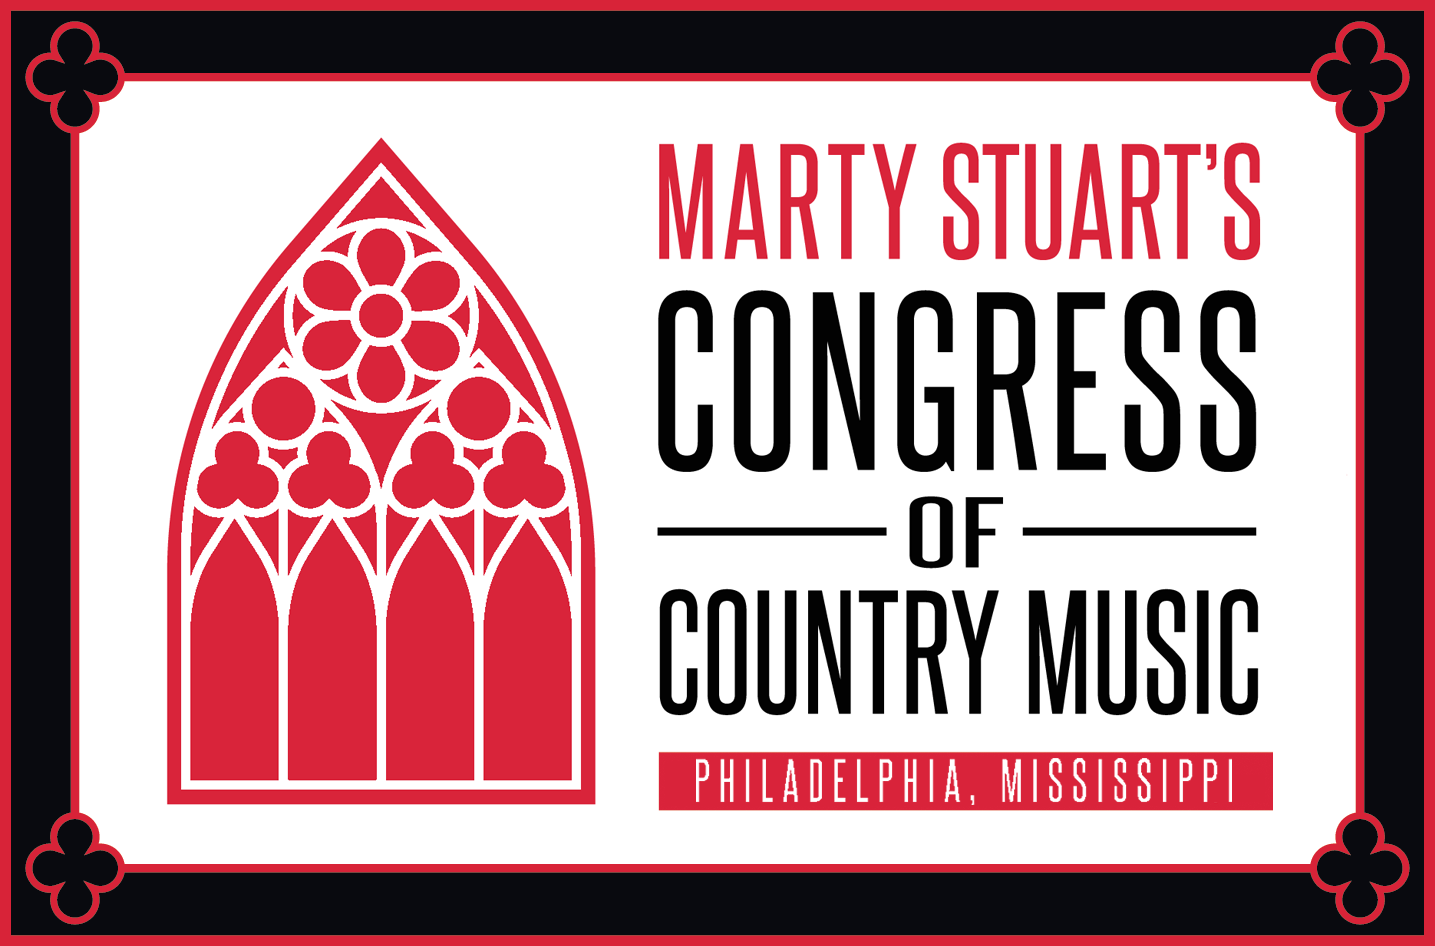 Marty Stuarts Congress of Country Music